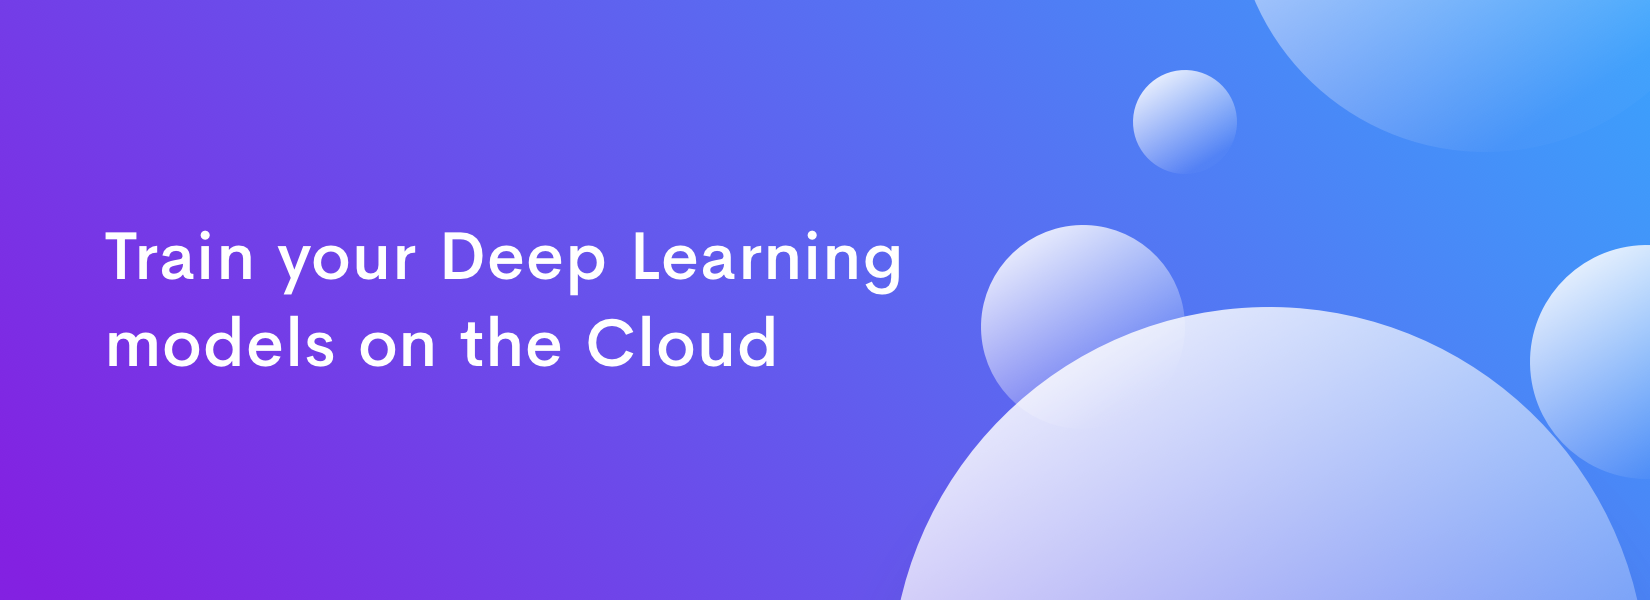 Train your Deep Learning models on the Cloud